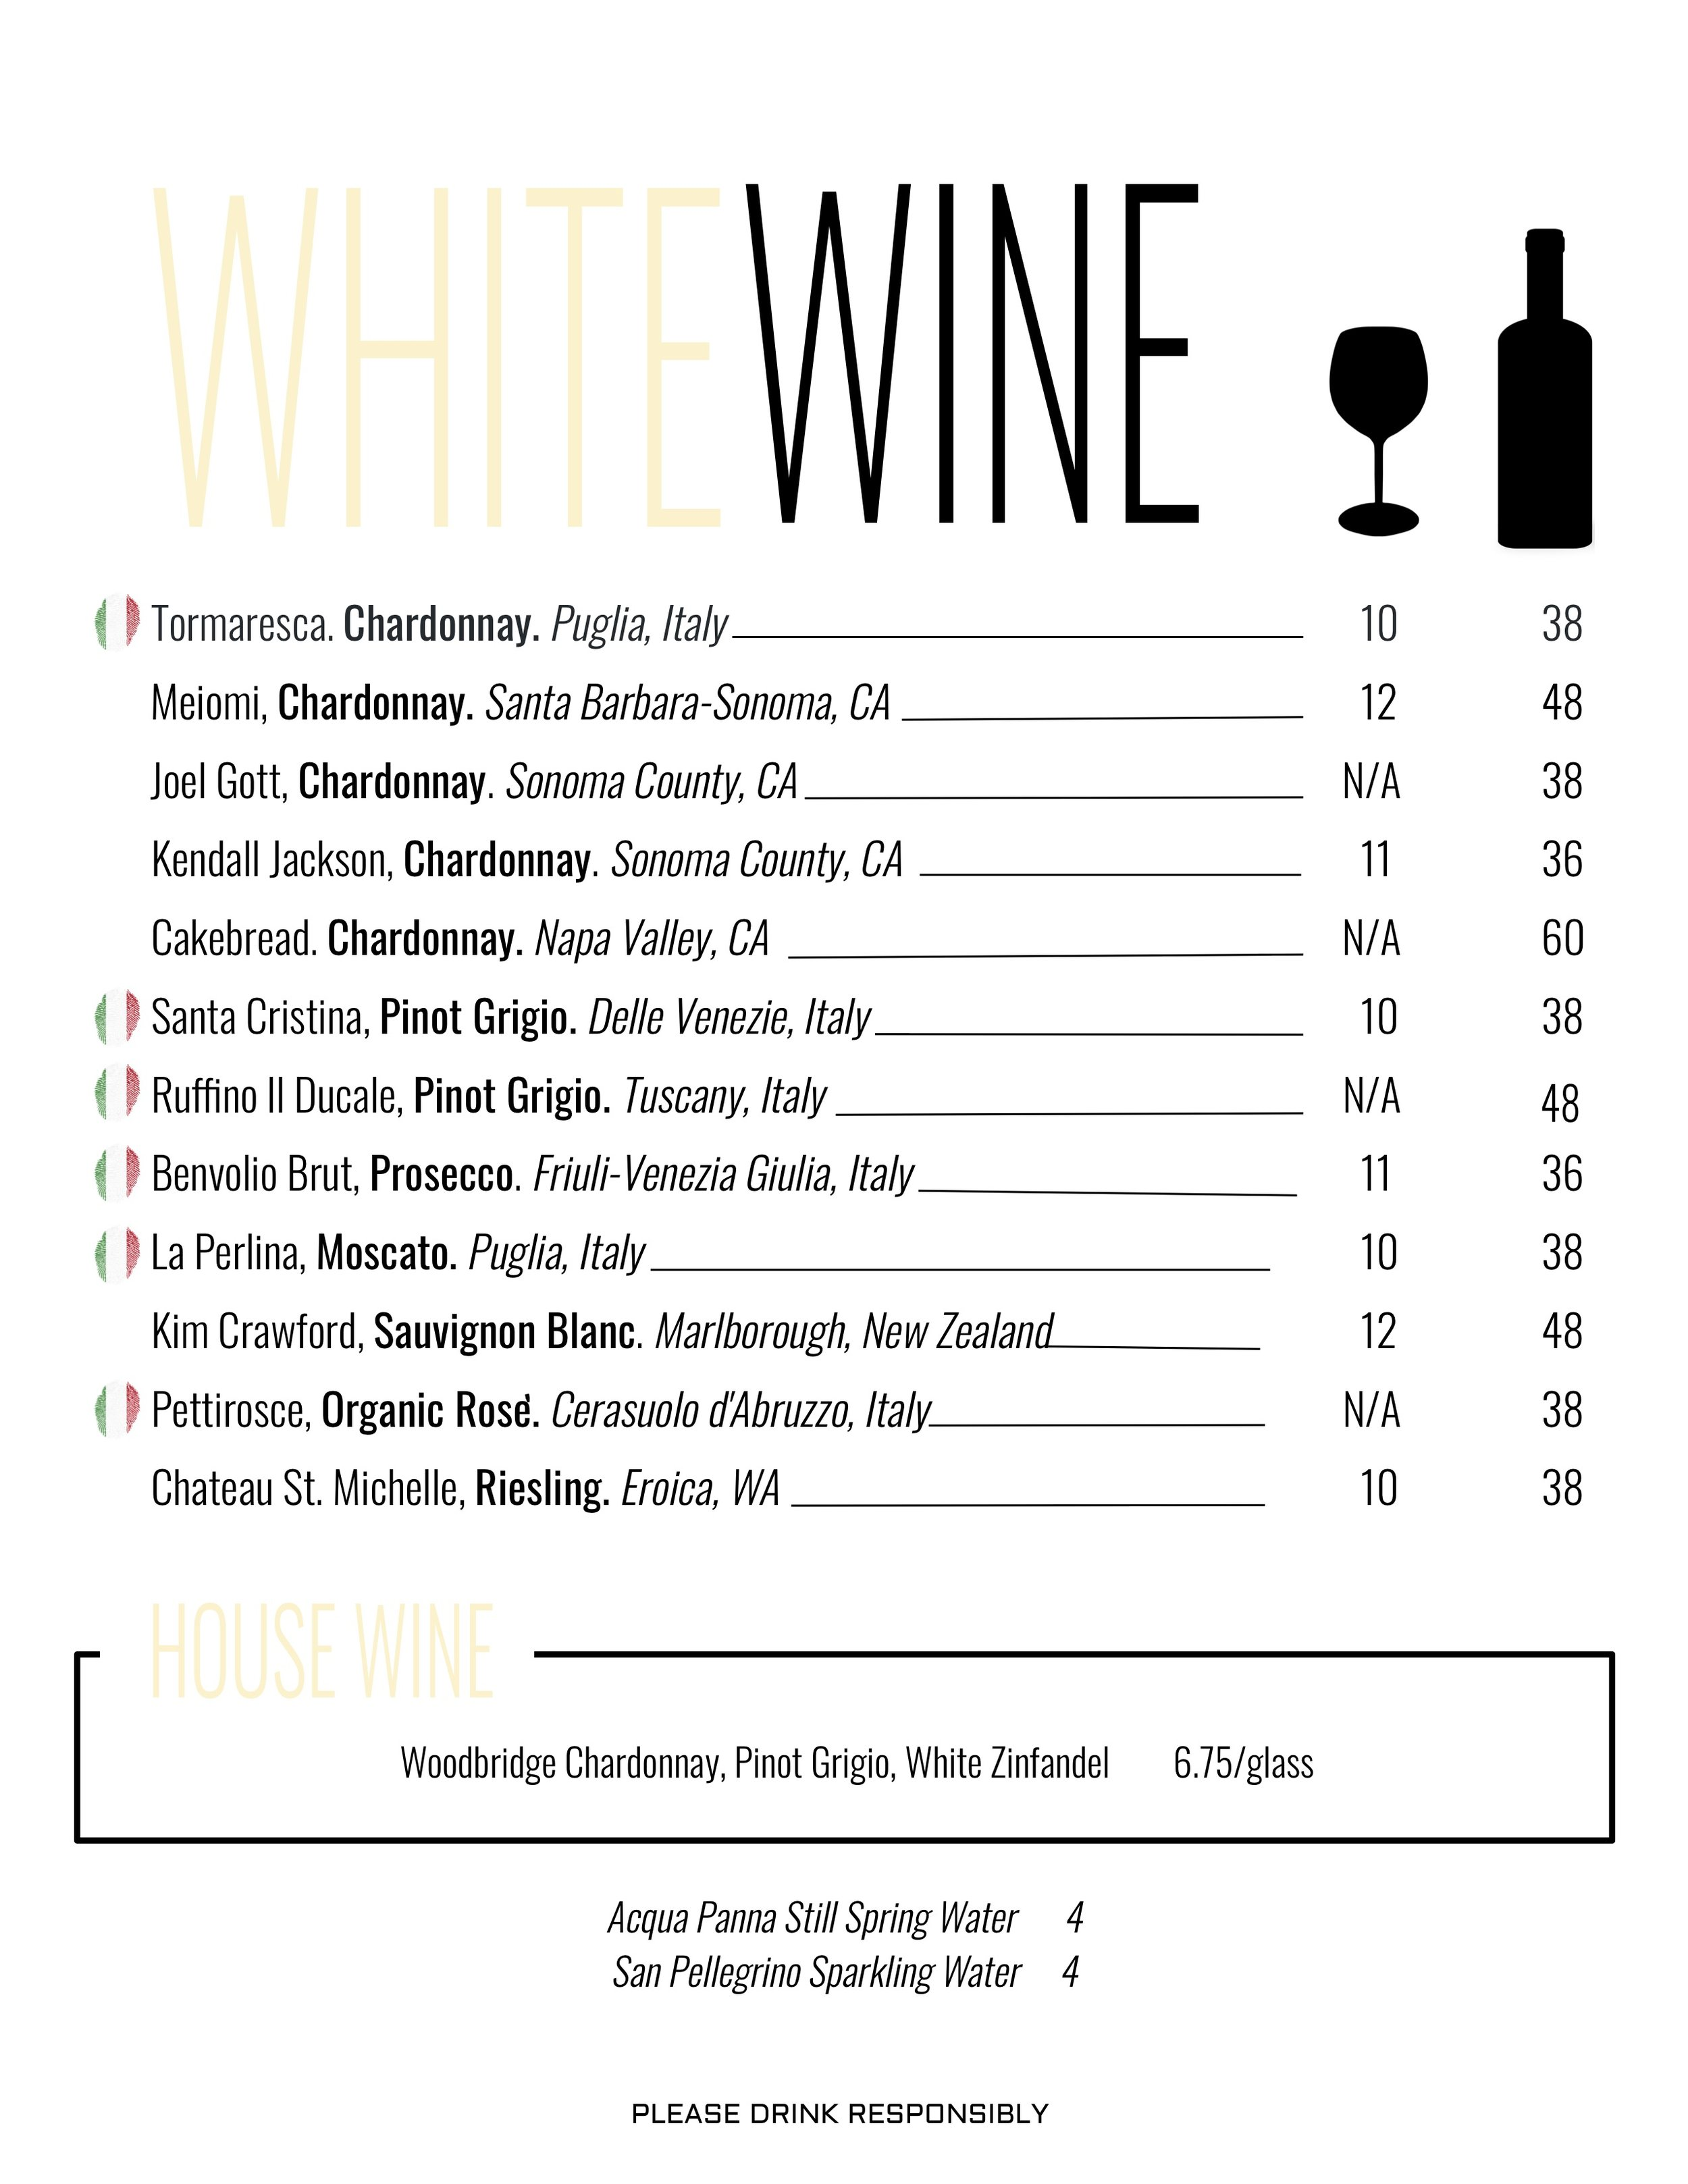 WHITE WINE LIST - June 4, 2019.jpg